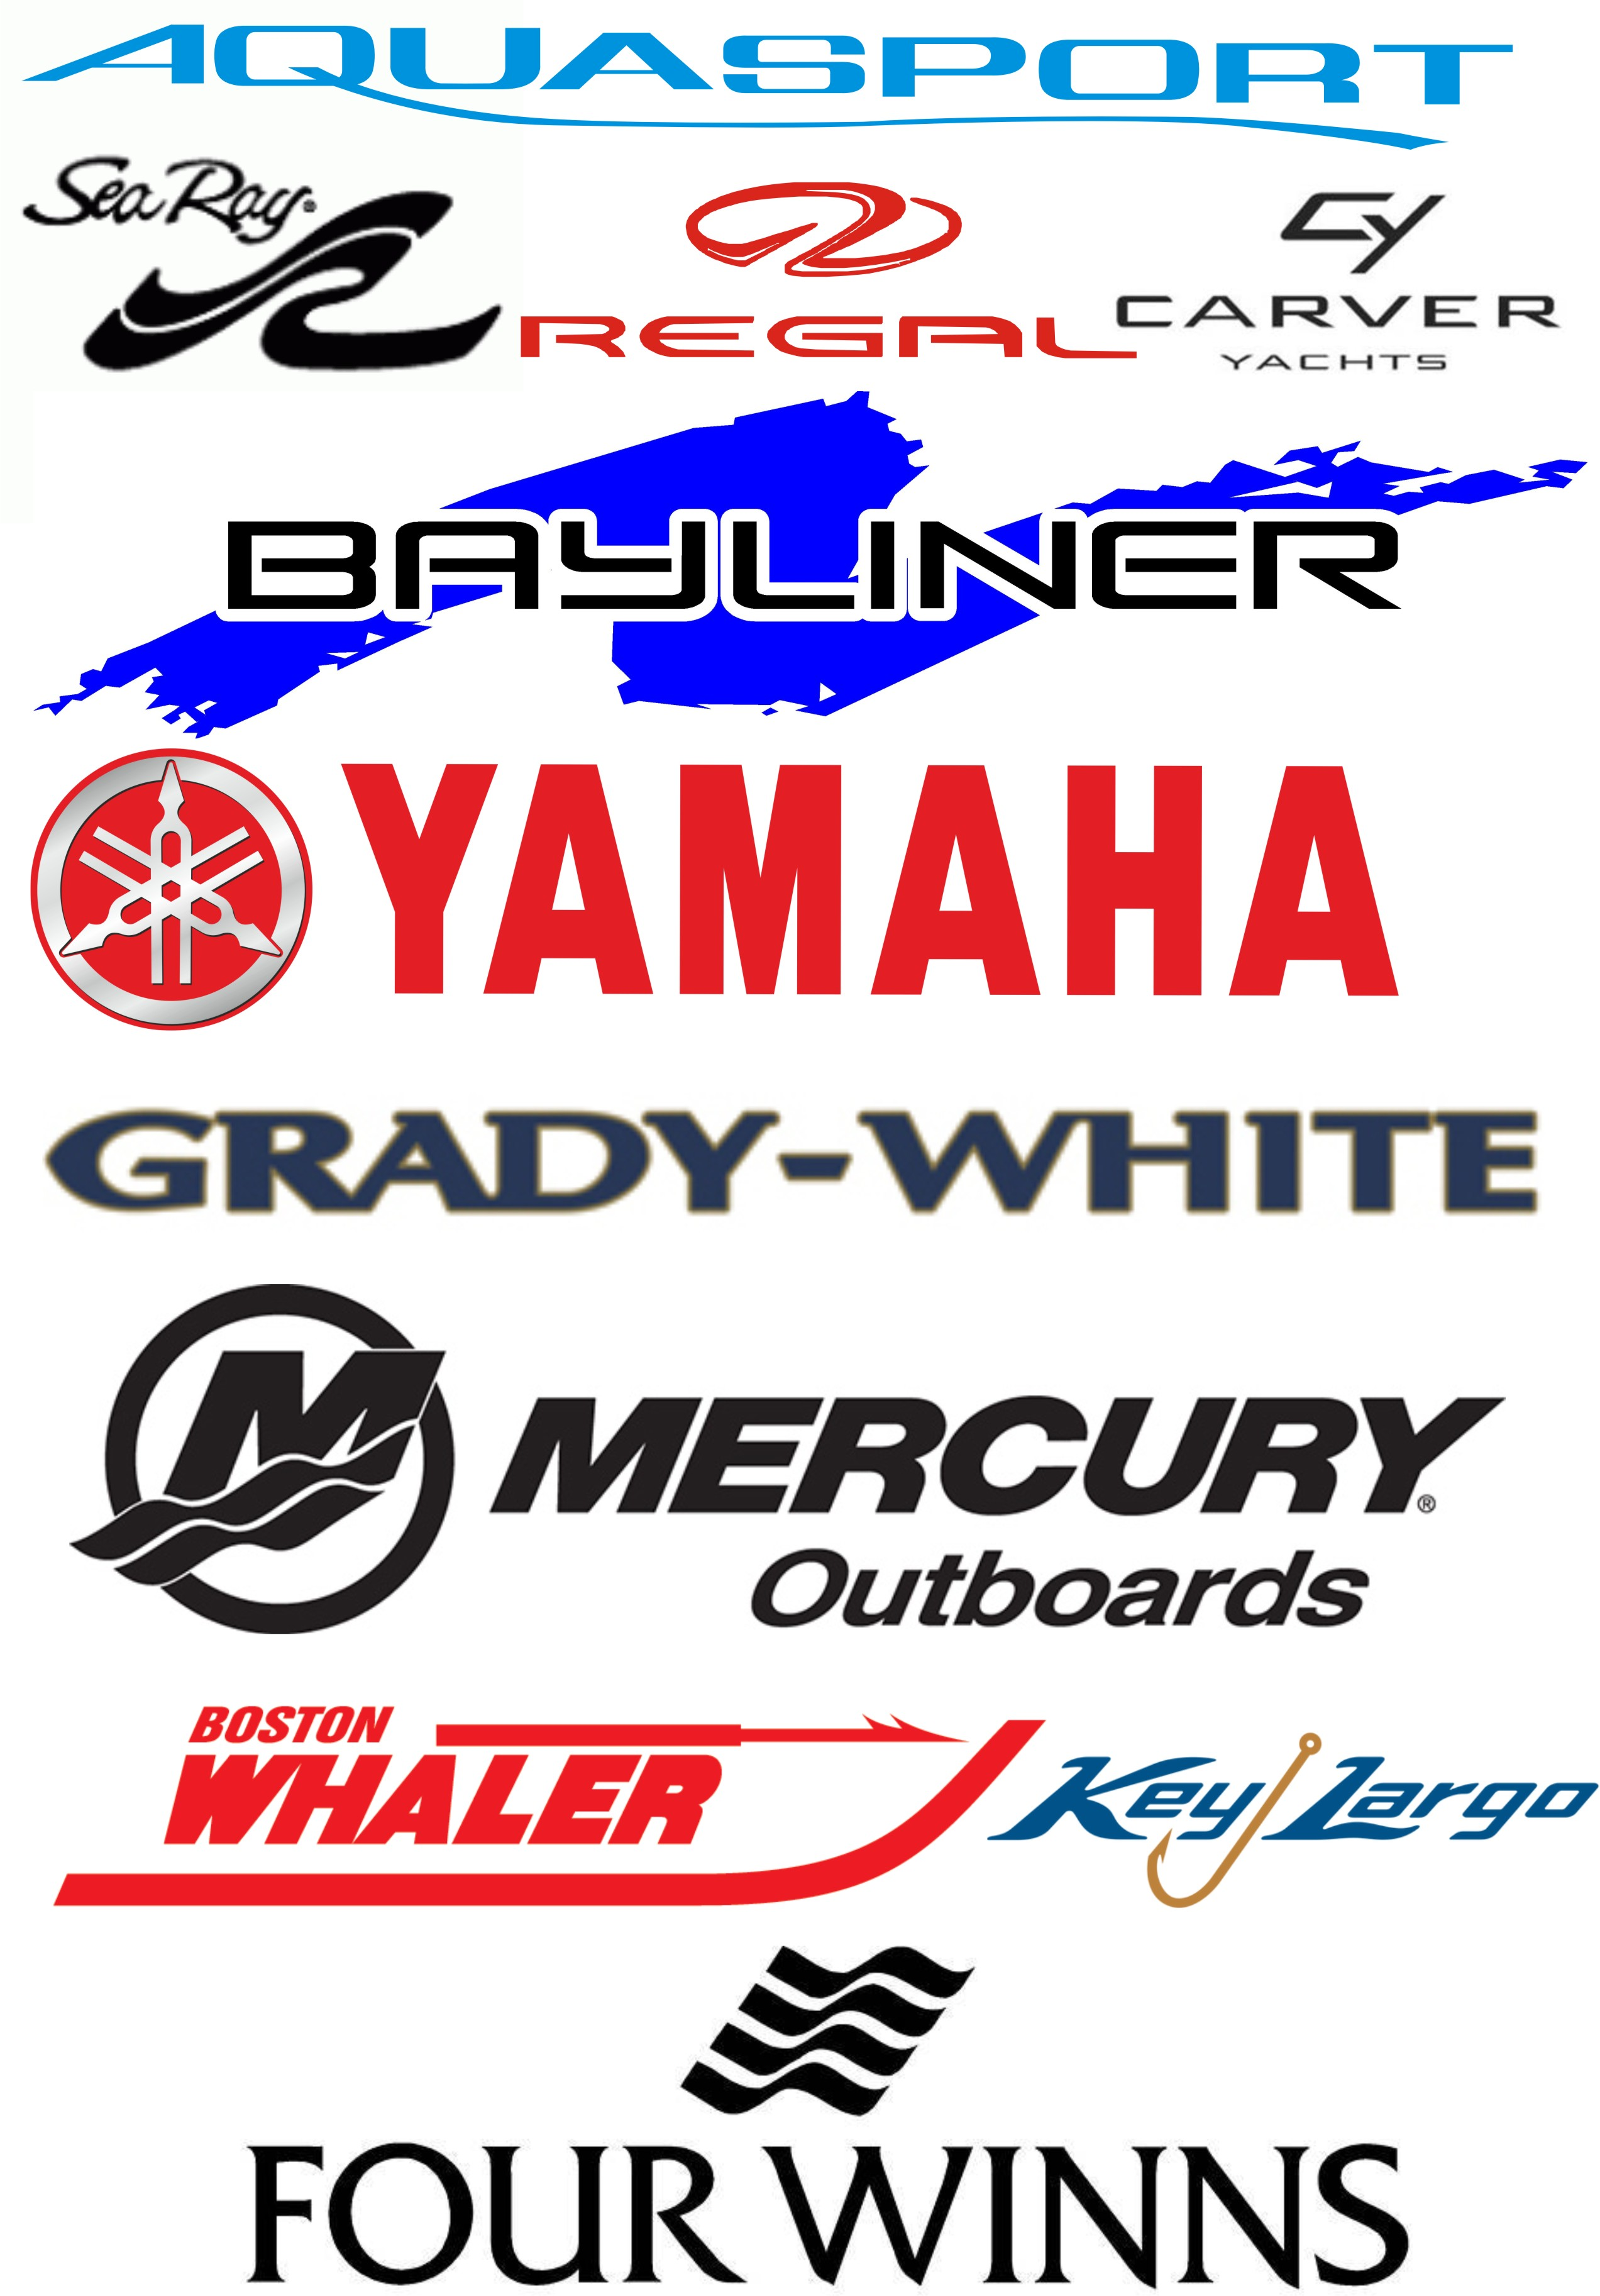 Replacing Your Boat Manufacturers Brand Logos and Pinstriping – Boat ...